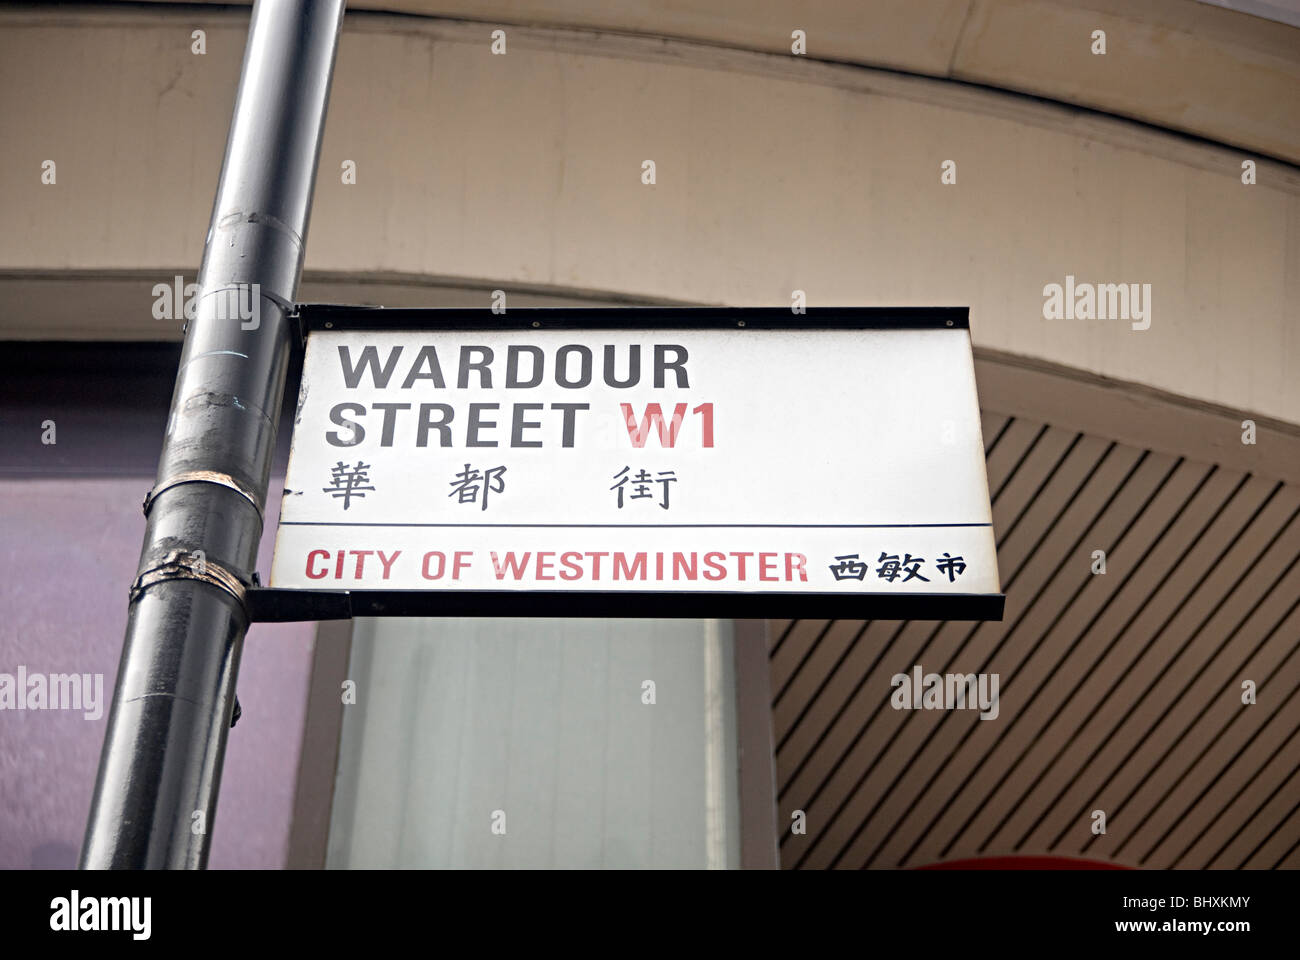 wardour street sign london city of westminster - Stock Image